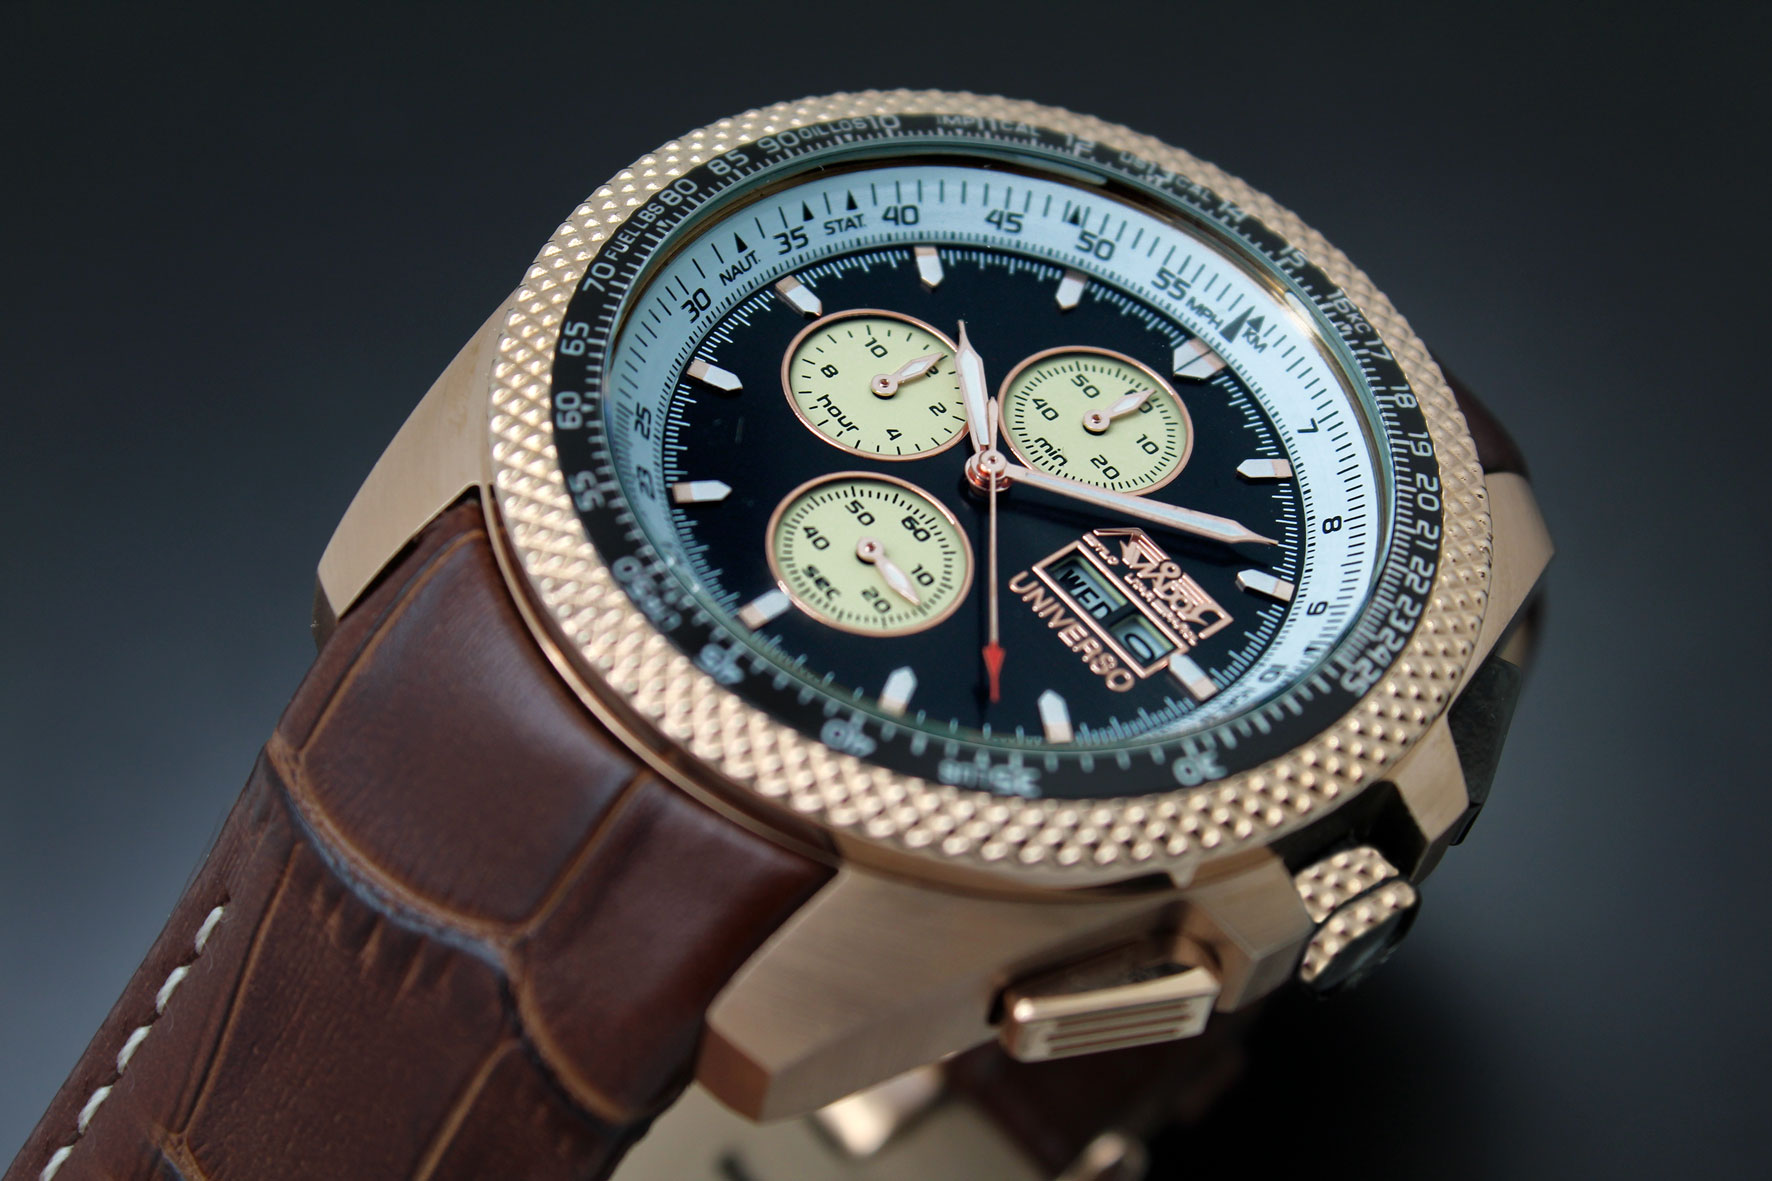 Reloj Aviador Watch Universo AV-1169